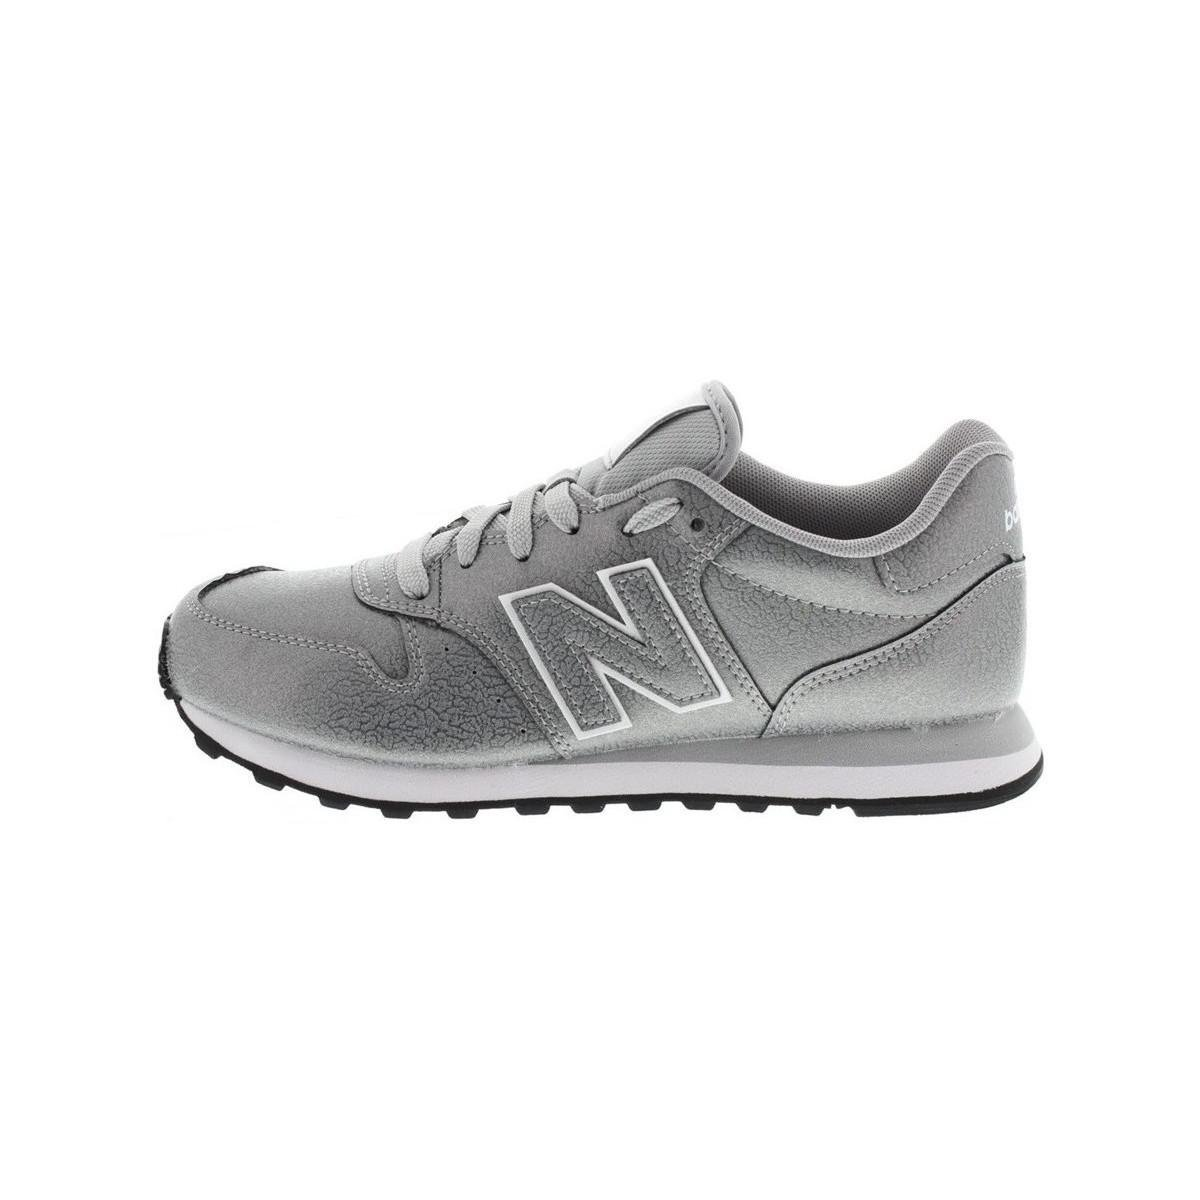 New Balance - Metallic 500 Women s Shoes (trainers) In Silver - Lyst 6553ee4f5a2